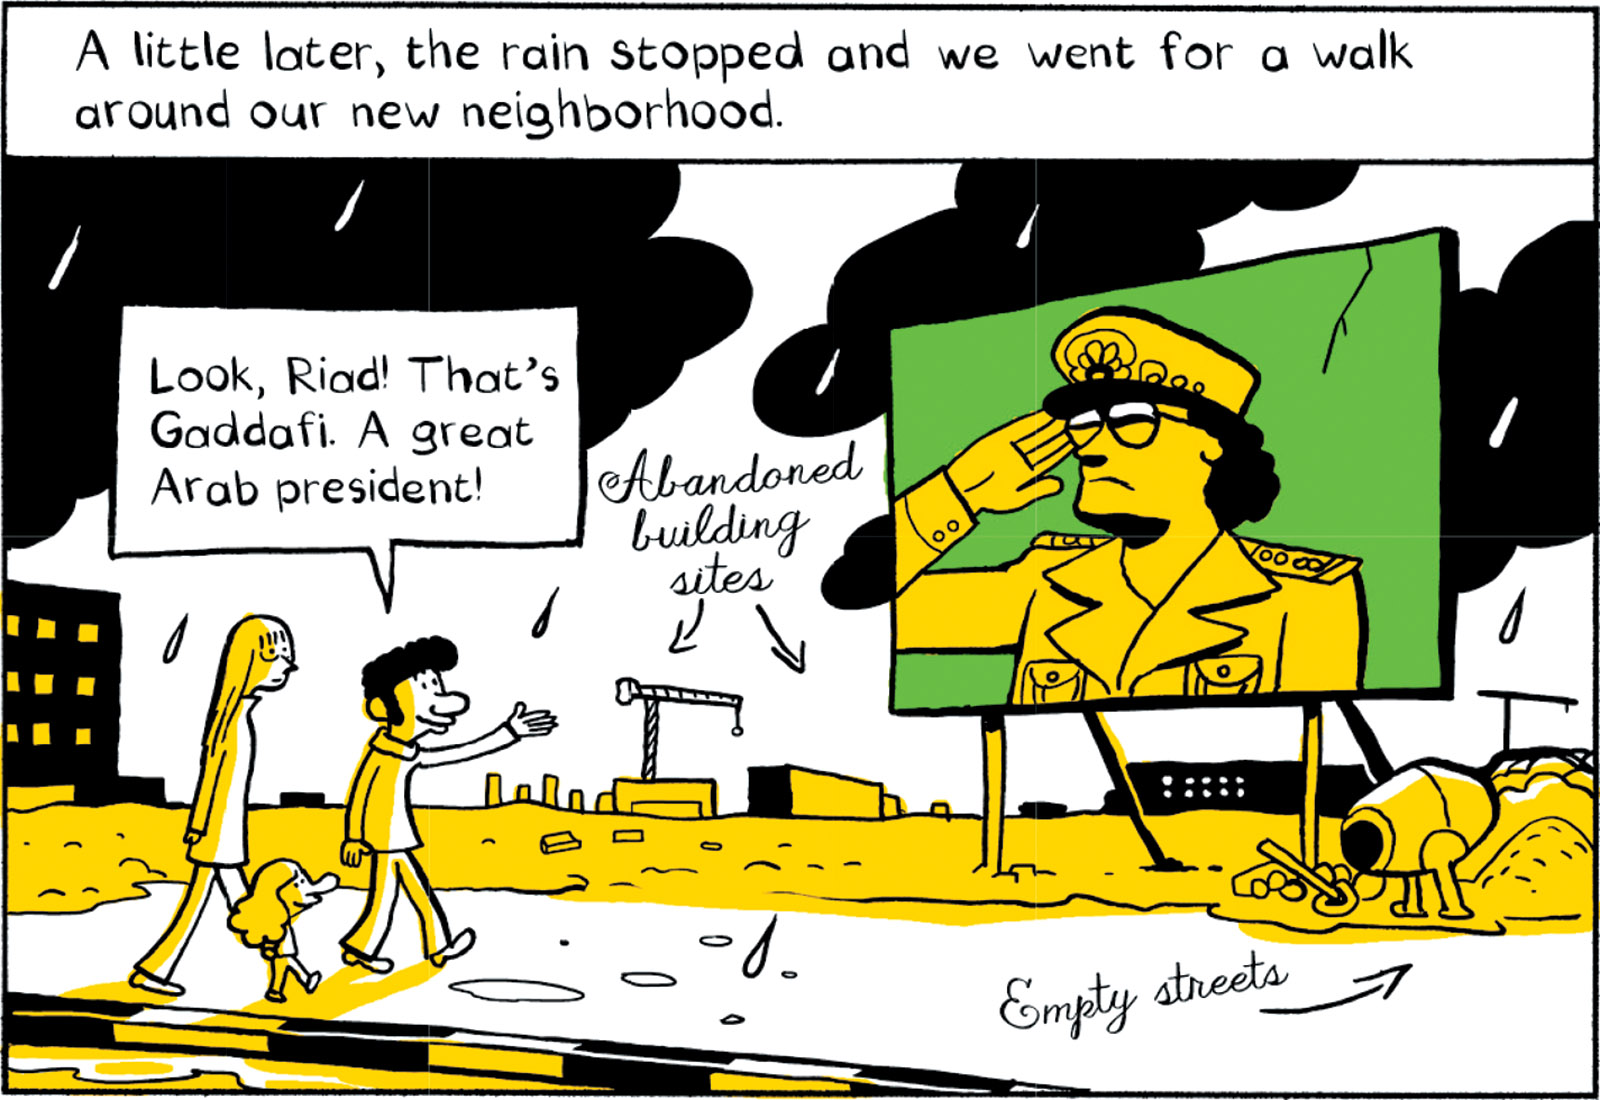 A panel from Riad Sattouf's graphic memoir The Arab of the Future